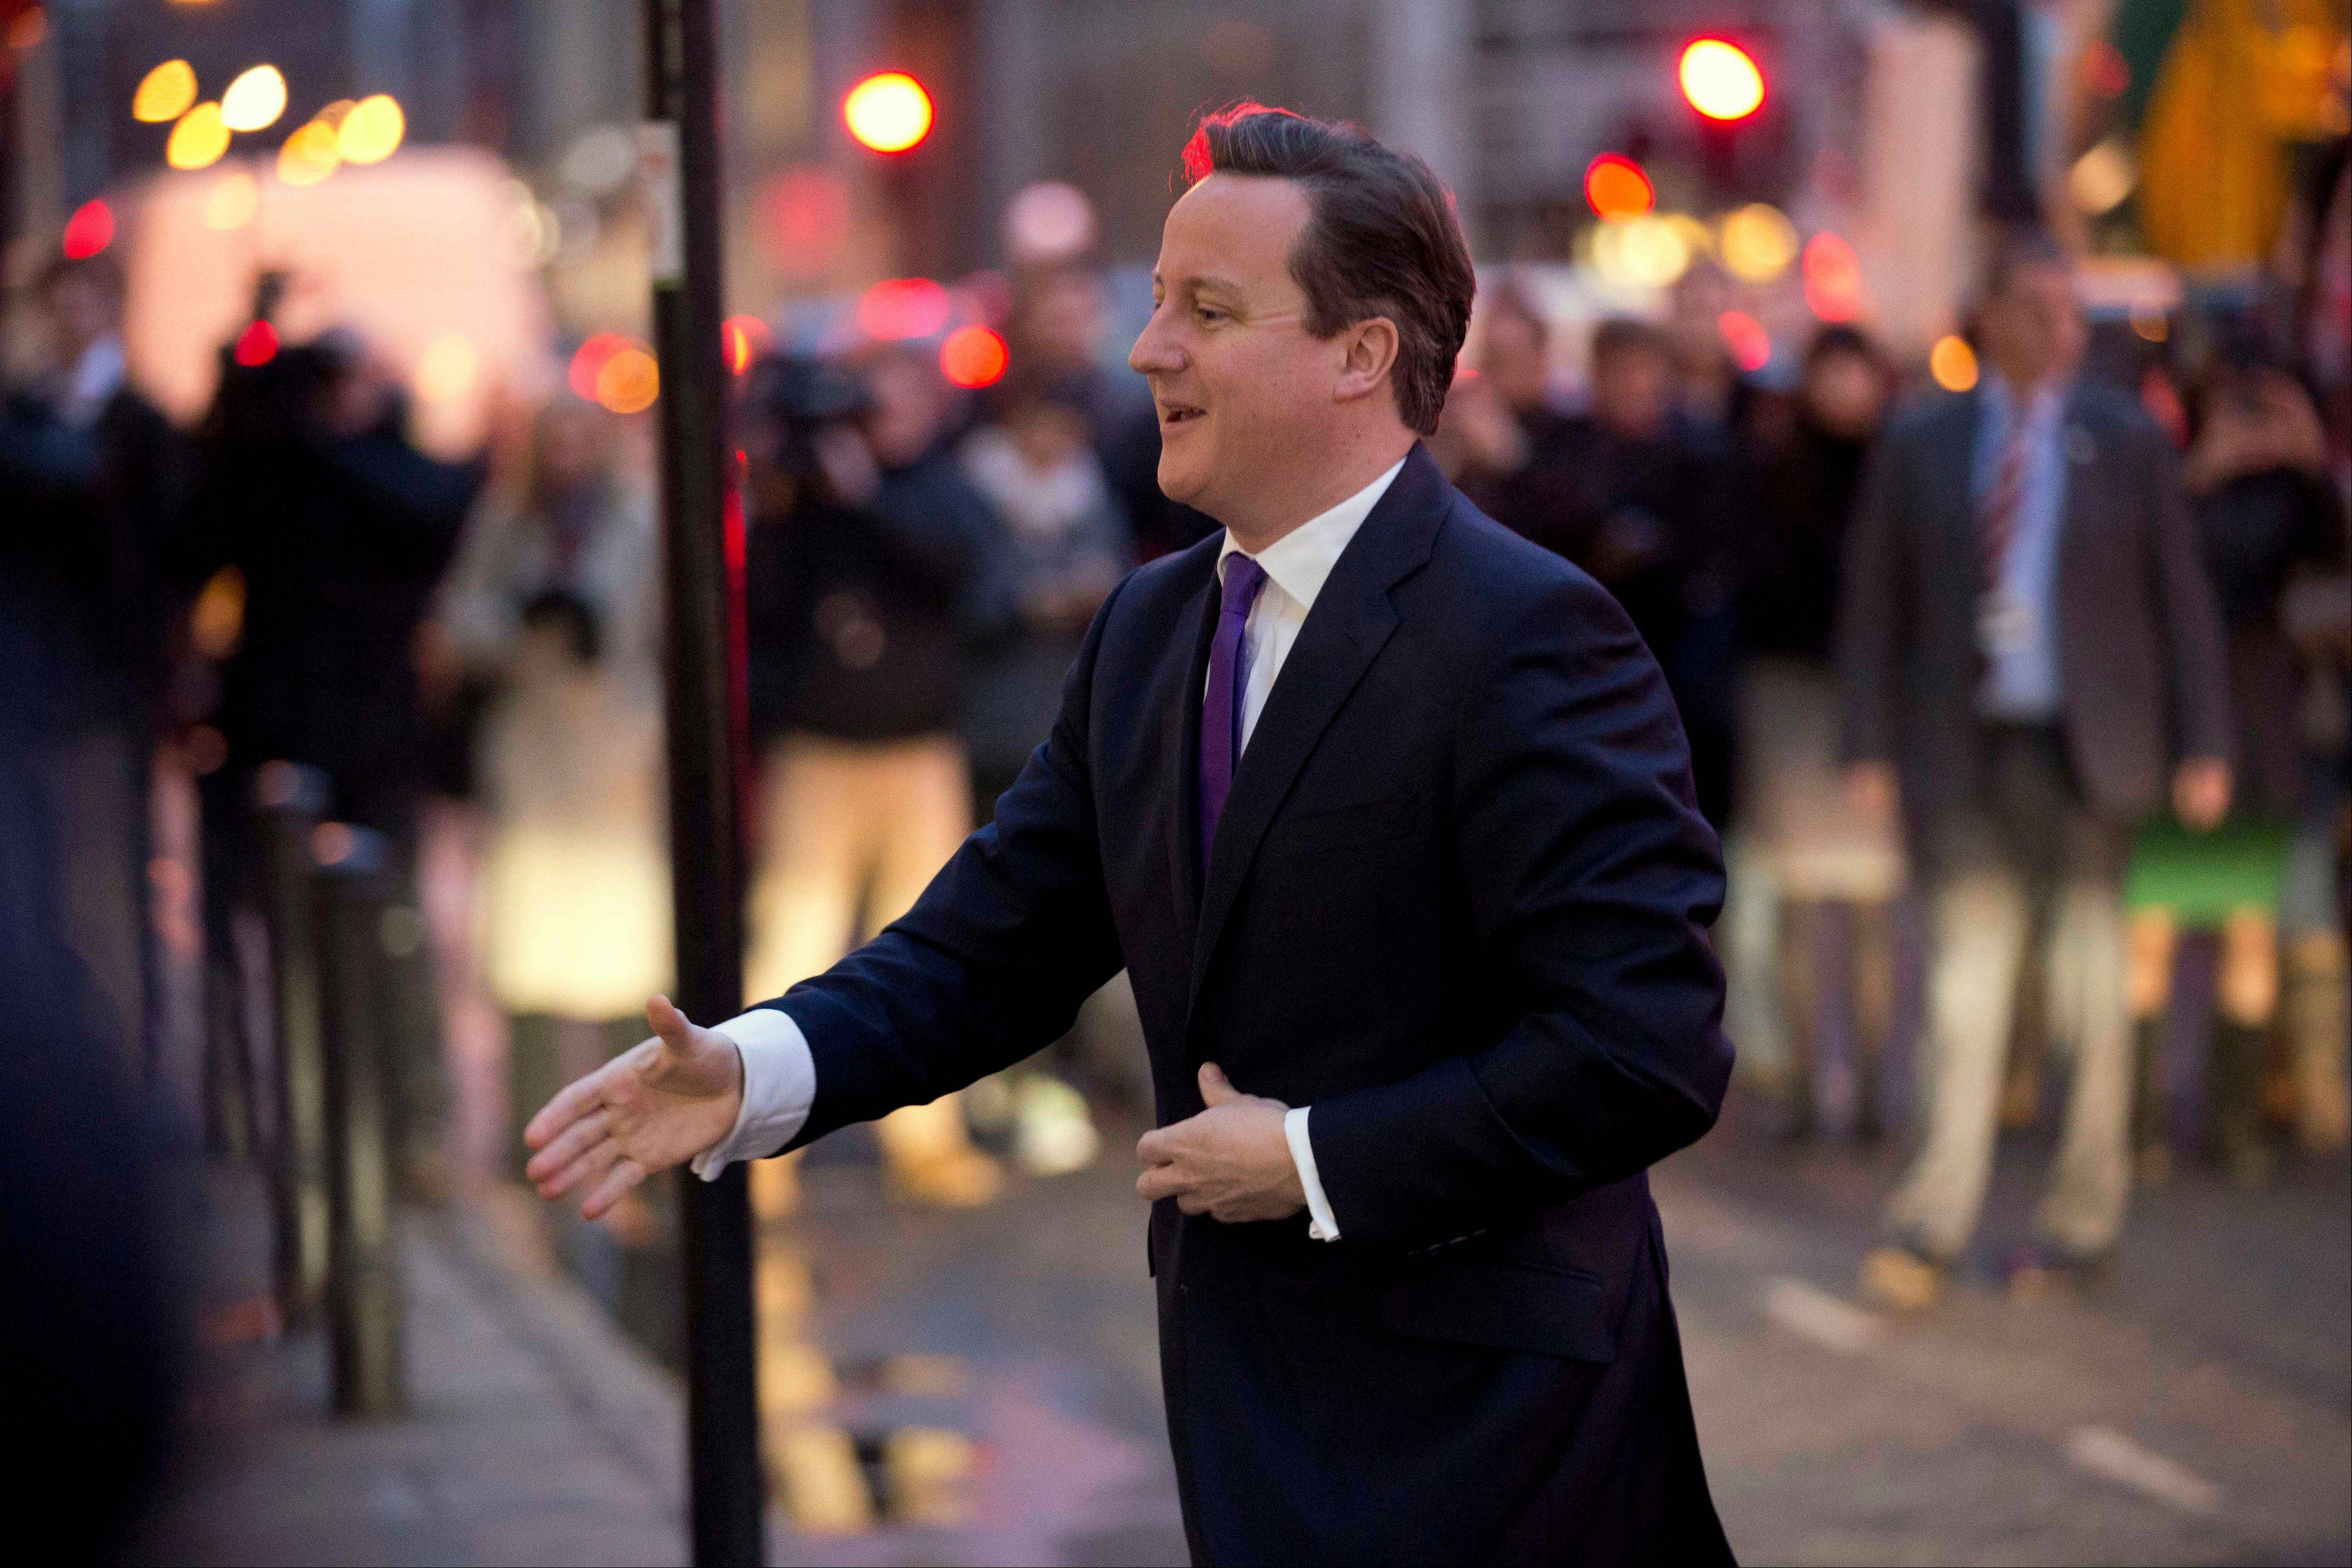 Britain's Prime Minister David Cameron reaches out to shake hands as he is greeted upon his arrival to deliver a speech on holding a referendum on staying in the European Union in London, Wednesday.